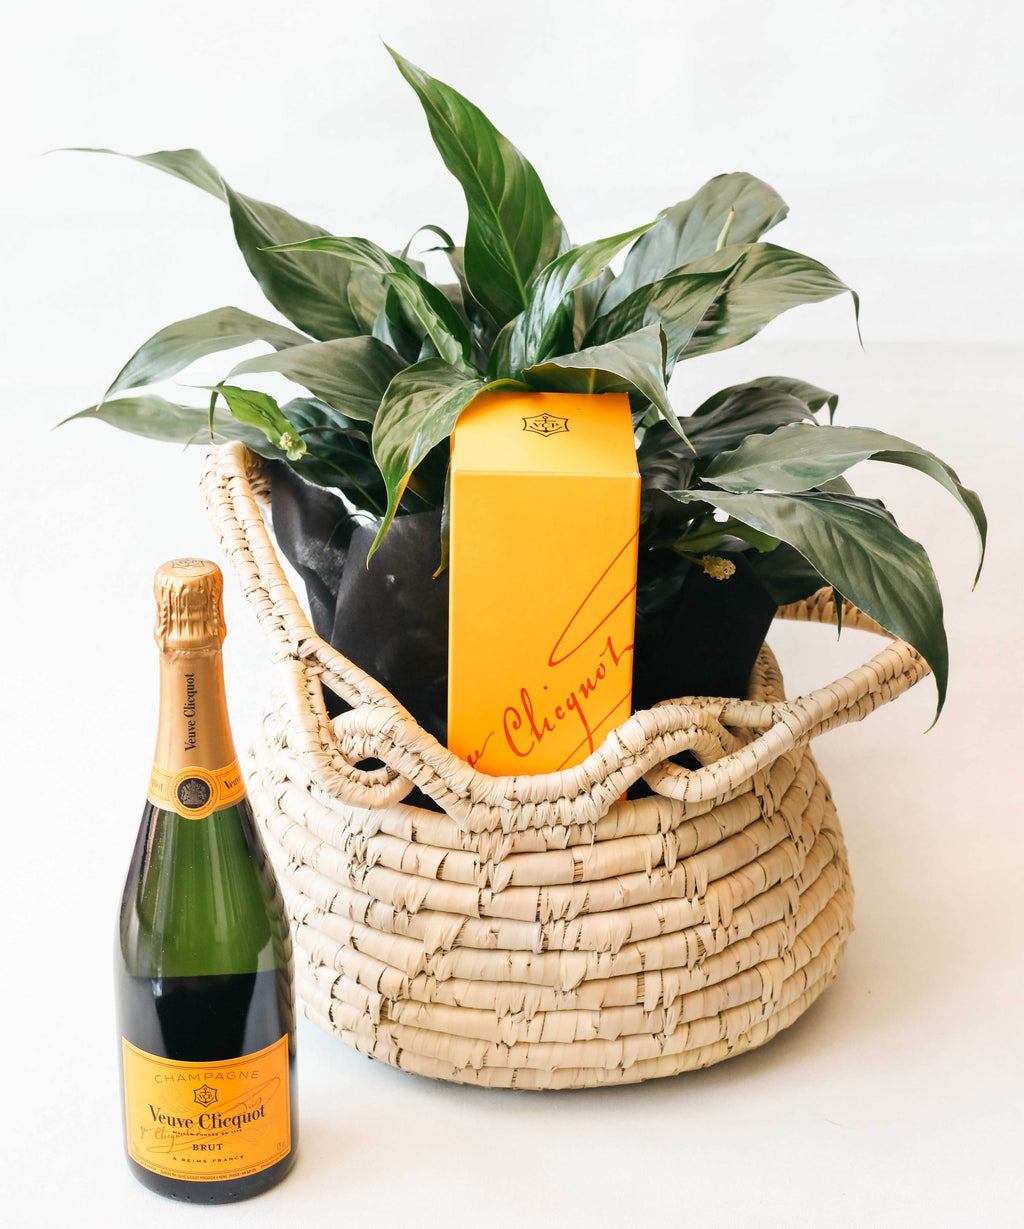 LIVING ZEST WITH VERVE CLICQUOT